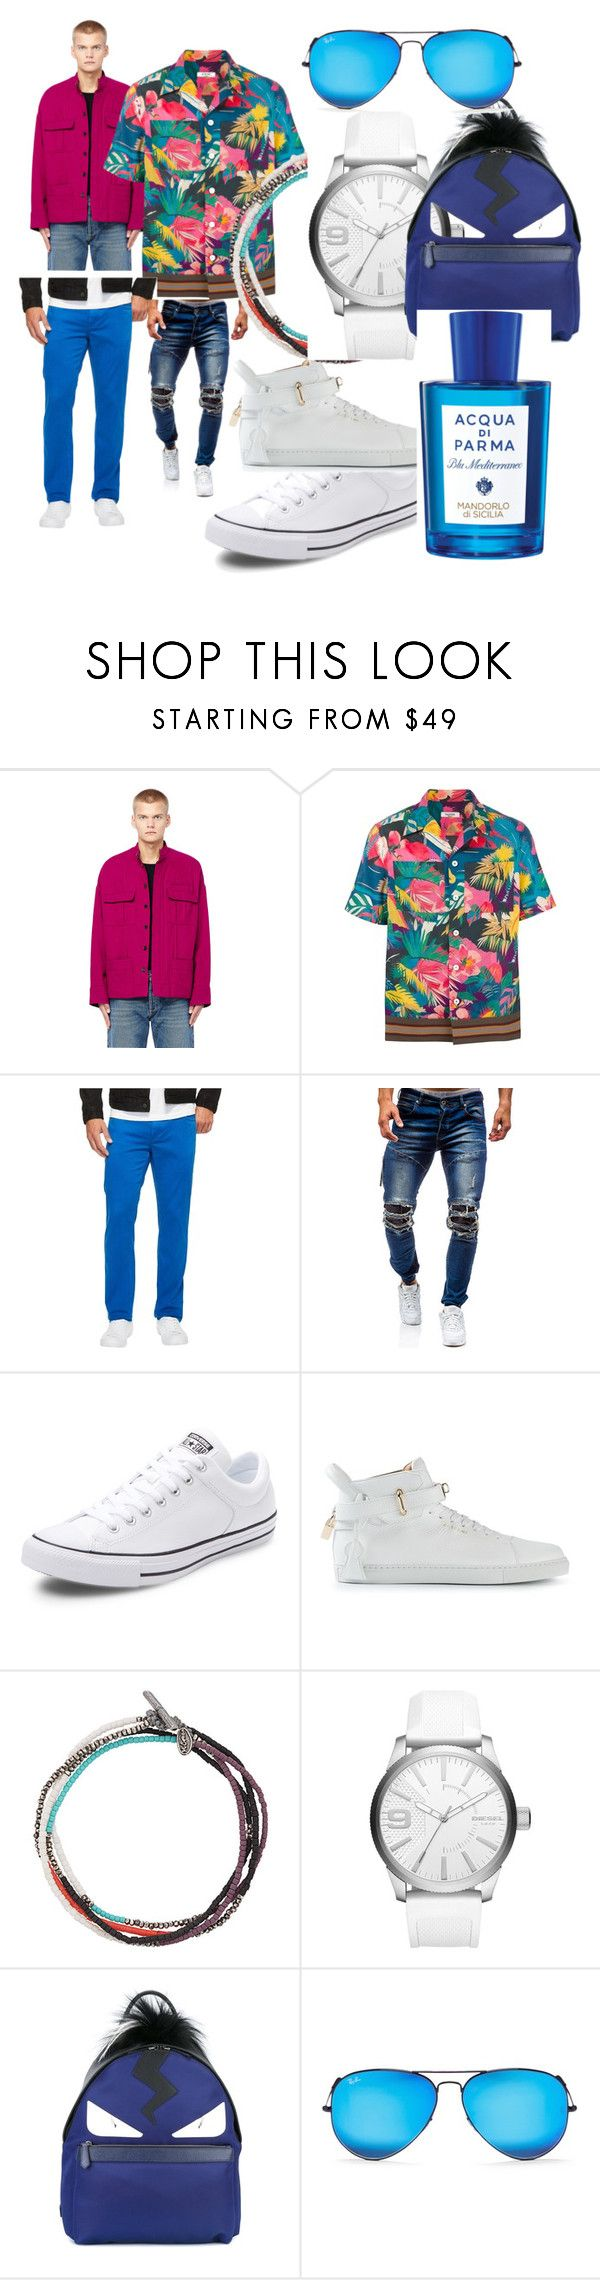 """""""#end#of#the#season#"""" by hannazakaria ❤ liked on Polyvore featuring Haider Ackermann, Valentino, Robert Graham, Converse, BUSCEMI, M. Cohen, Diesel, Fendi, Ray-Ban and Acqua di Parma"""